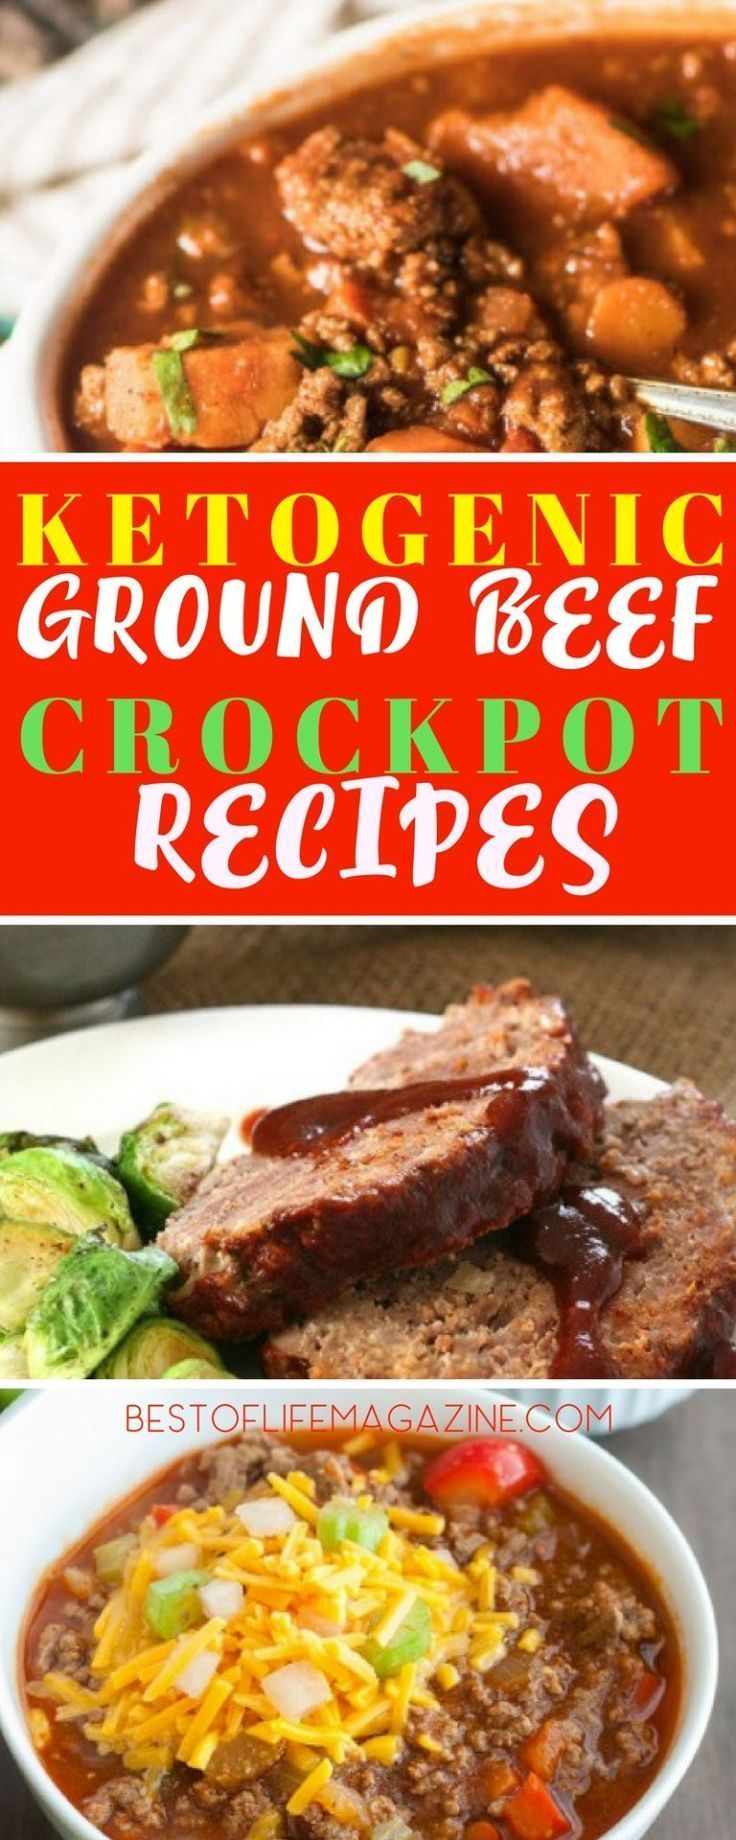 Ketogenic Ground Beef Crockpot Recipes Keep You On Track With Your Keto Diet Without Compromising Your Taste Buds Low Carbohydrate Recipes K Ground Beef Crockpot Recipes Healthy Beef Recipes Beef Recipes